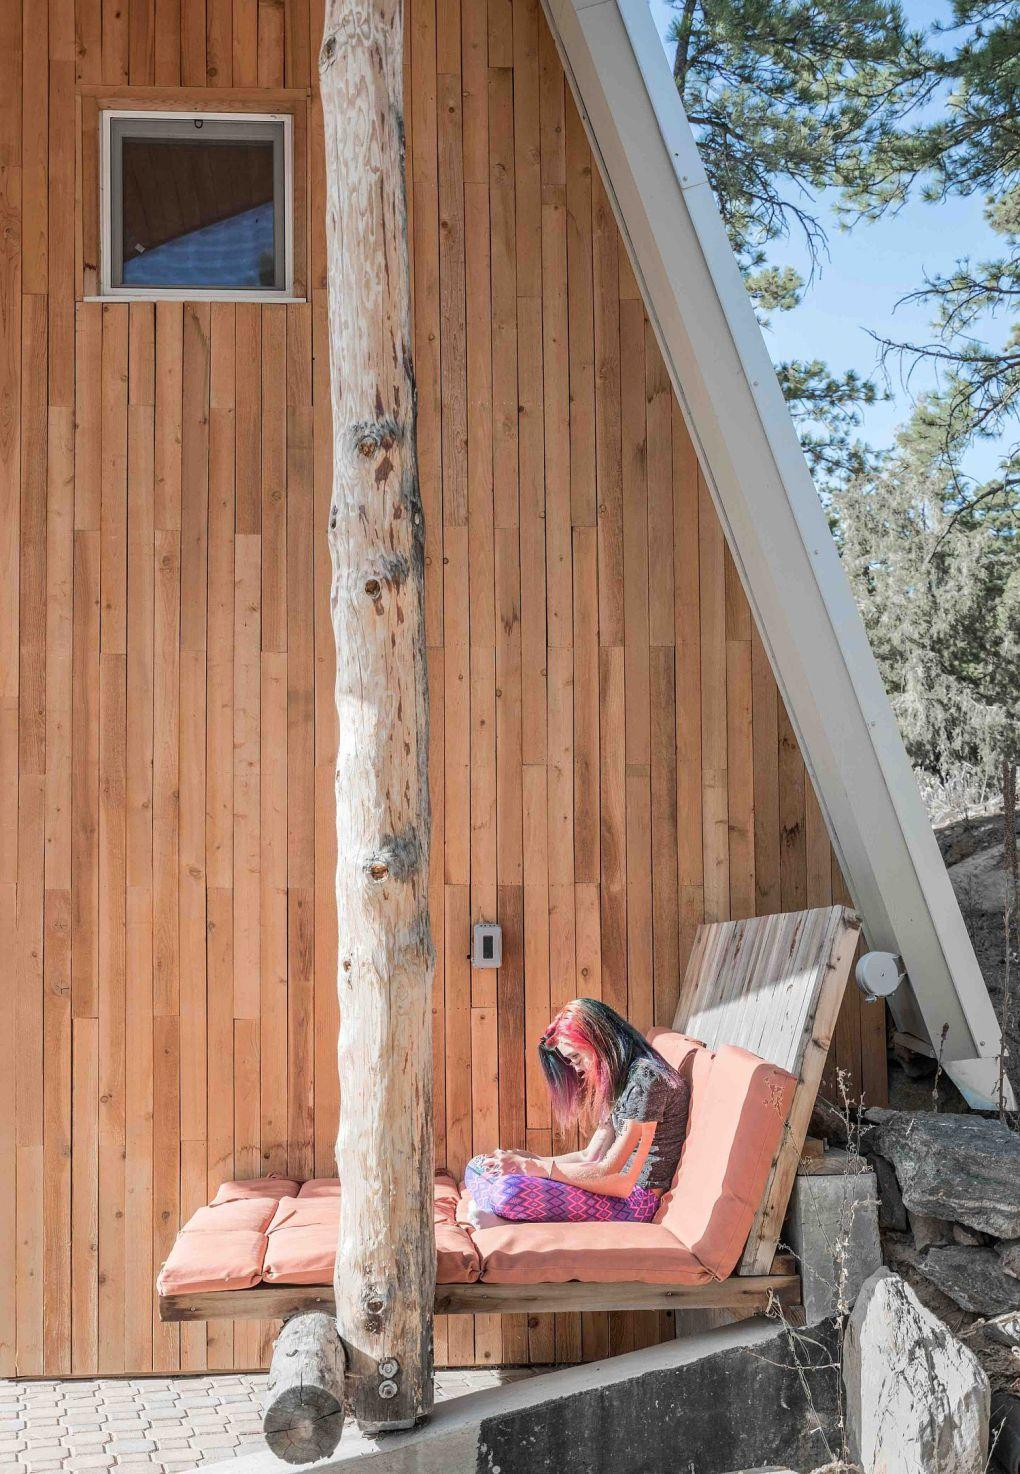 Colorado Evleri | Wood exterior of the home gives it cool cabin look 1